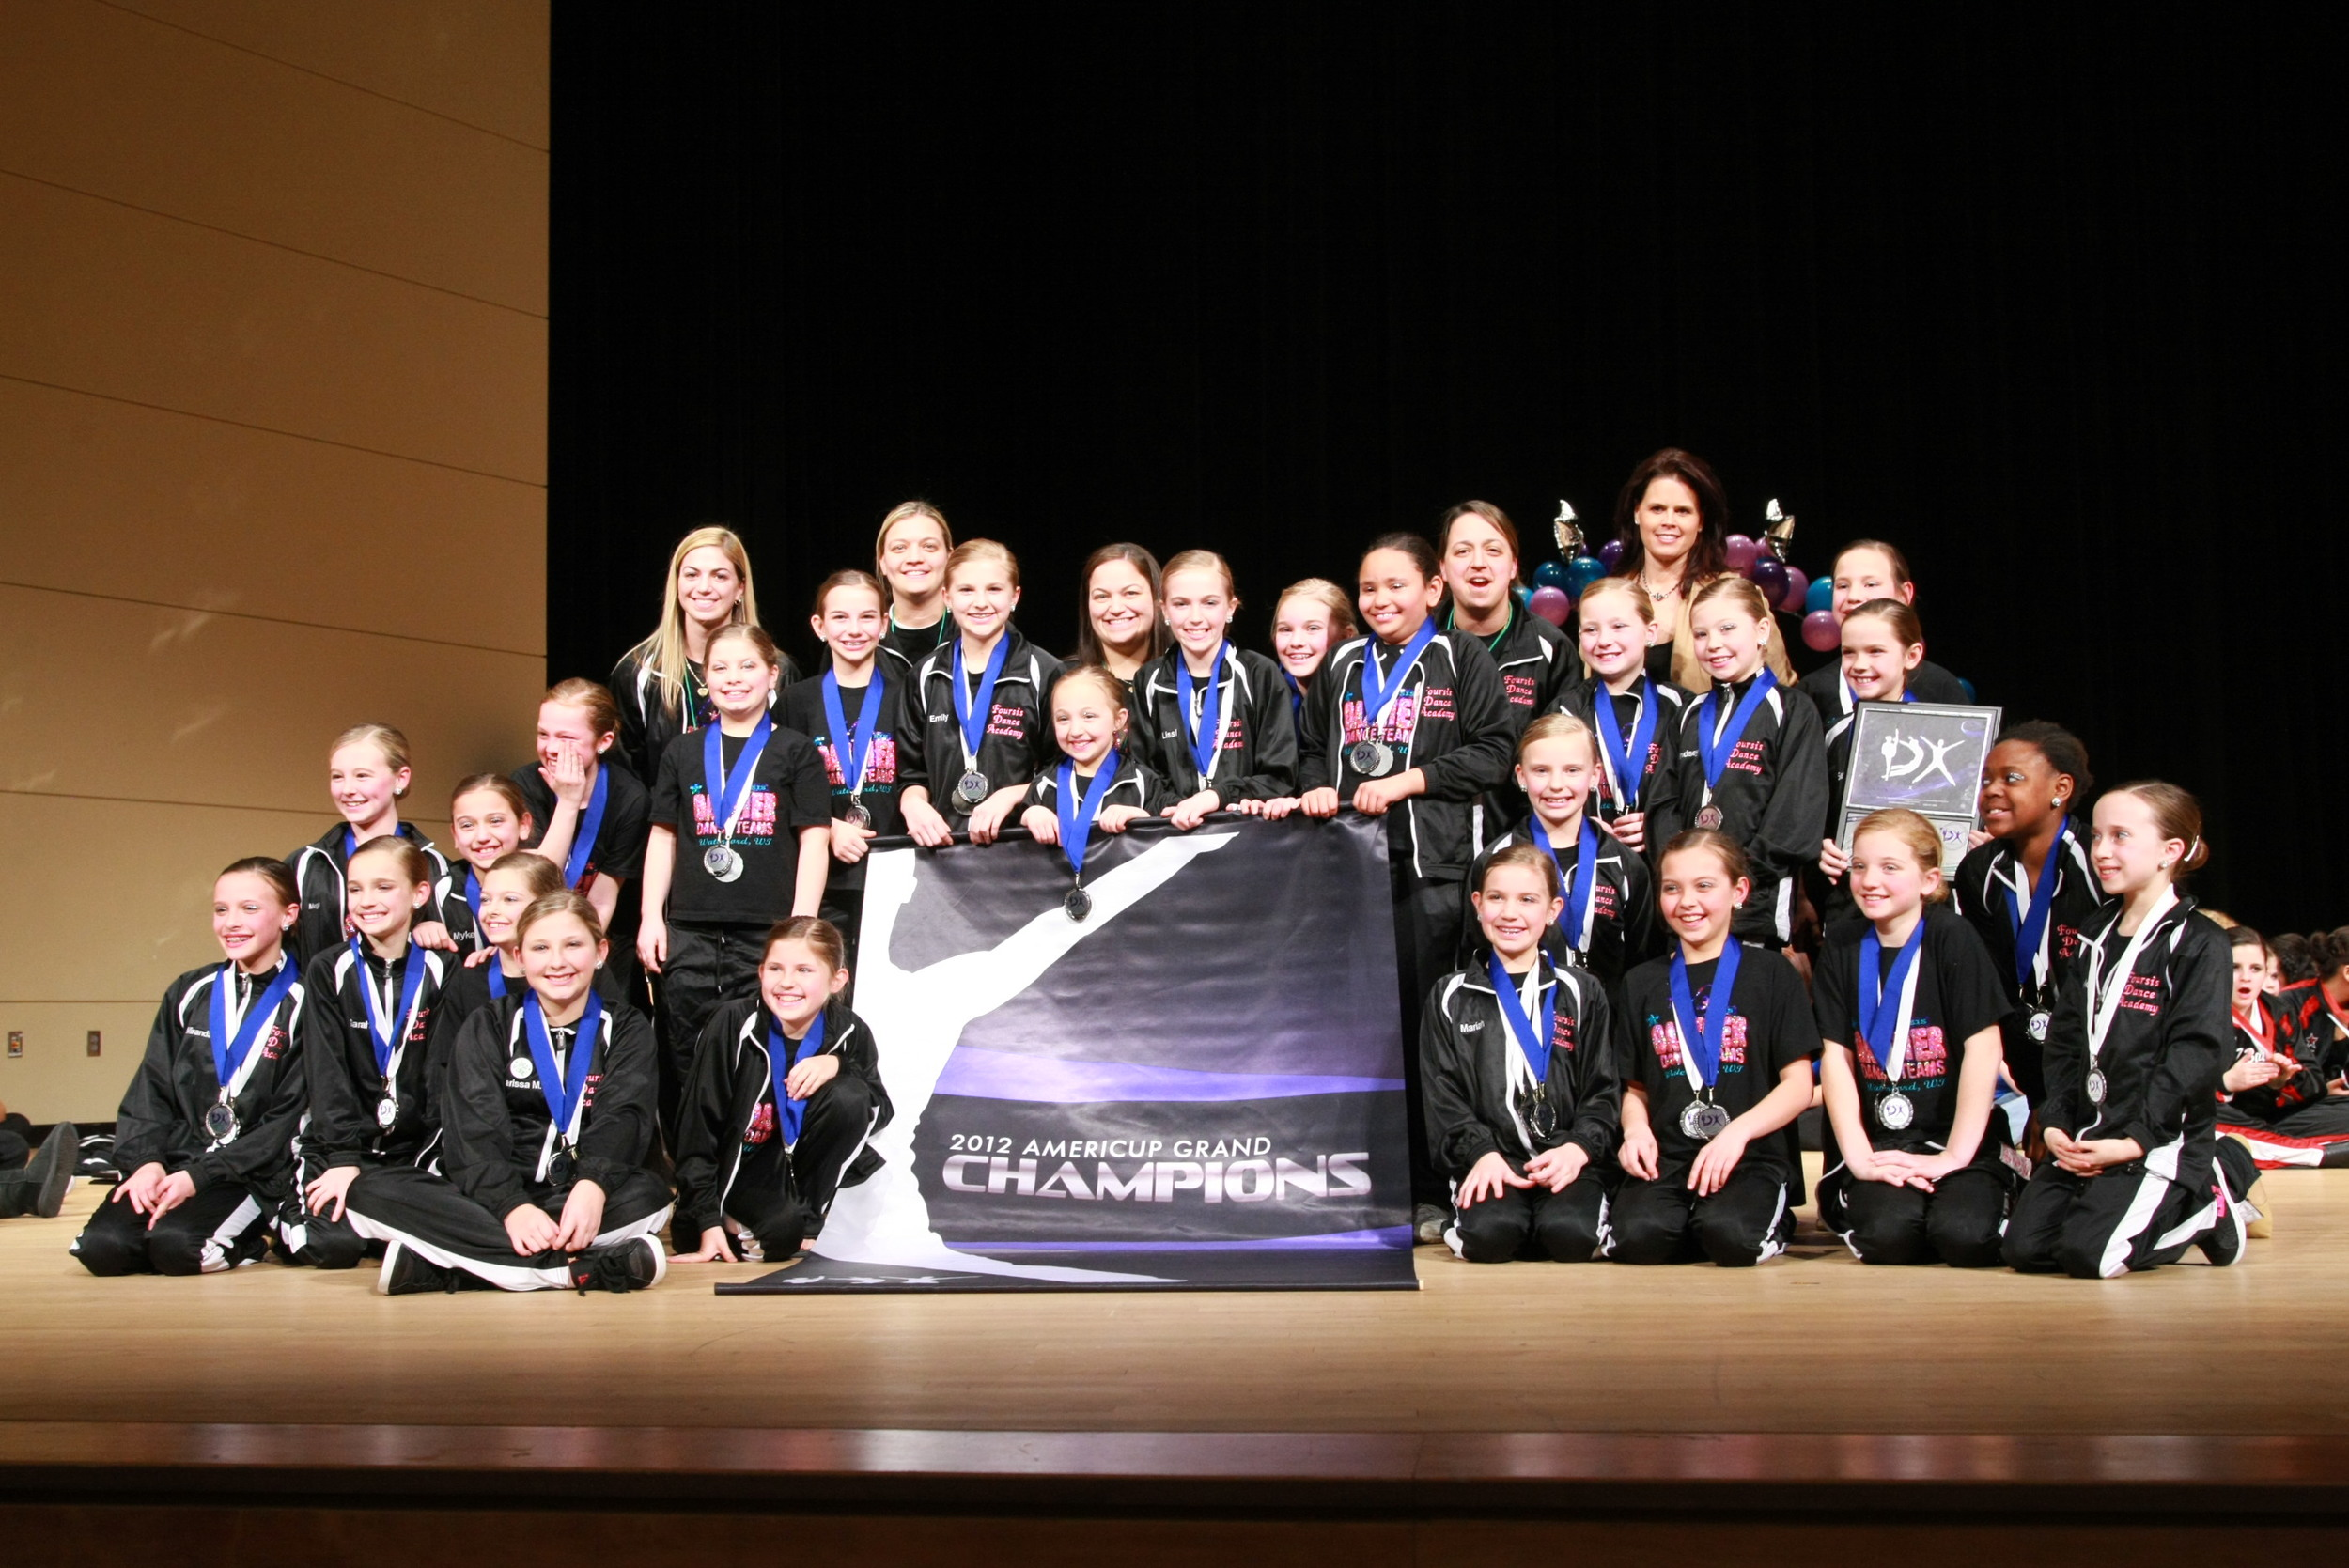 2012 AmeriCup Youth Grand Champions  Foursis Dazzlerettes, Wisconsin